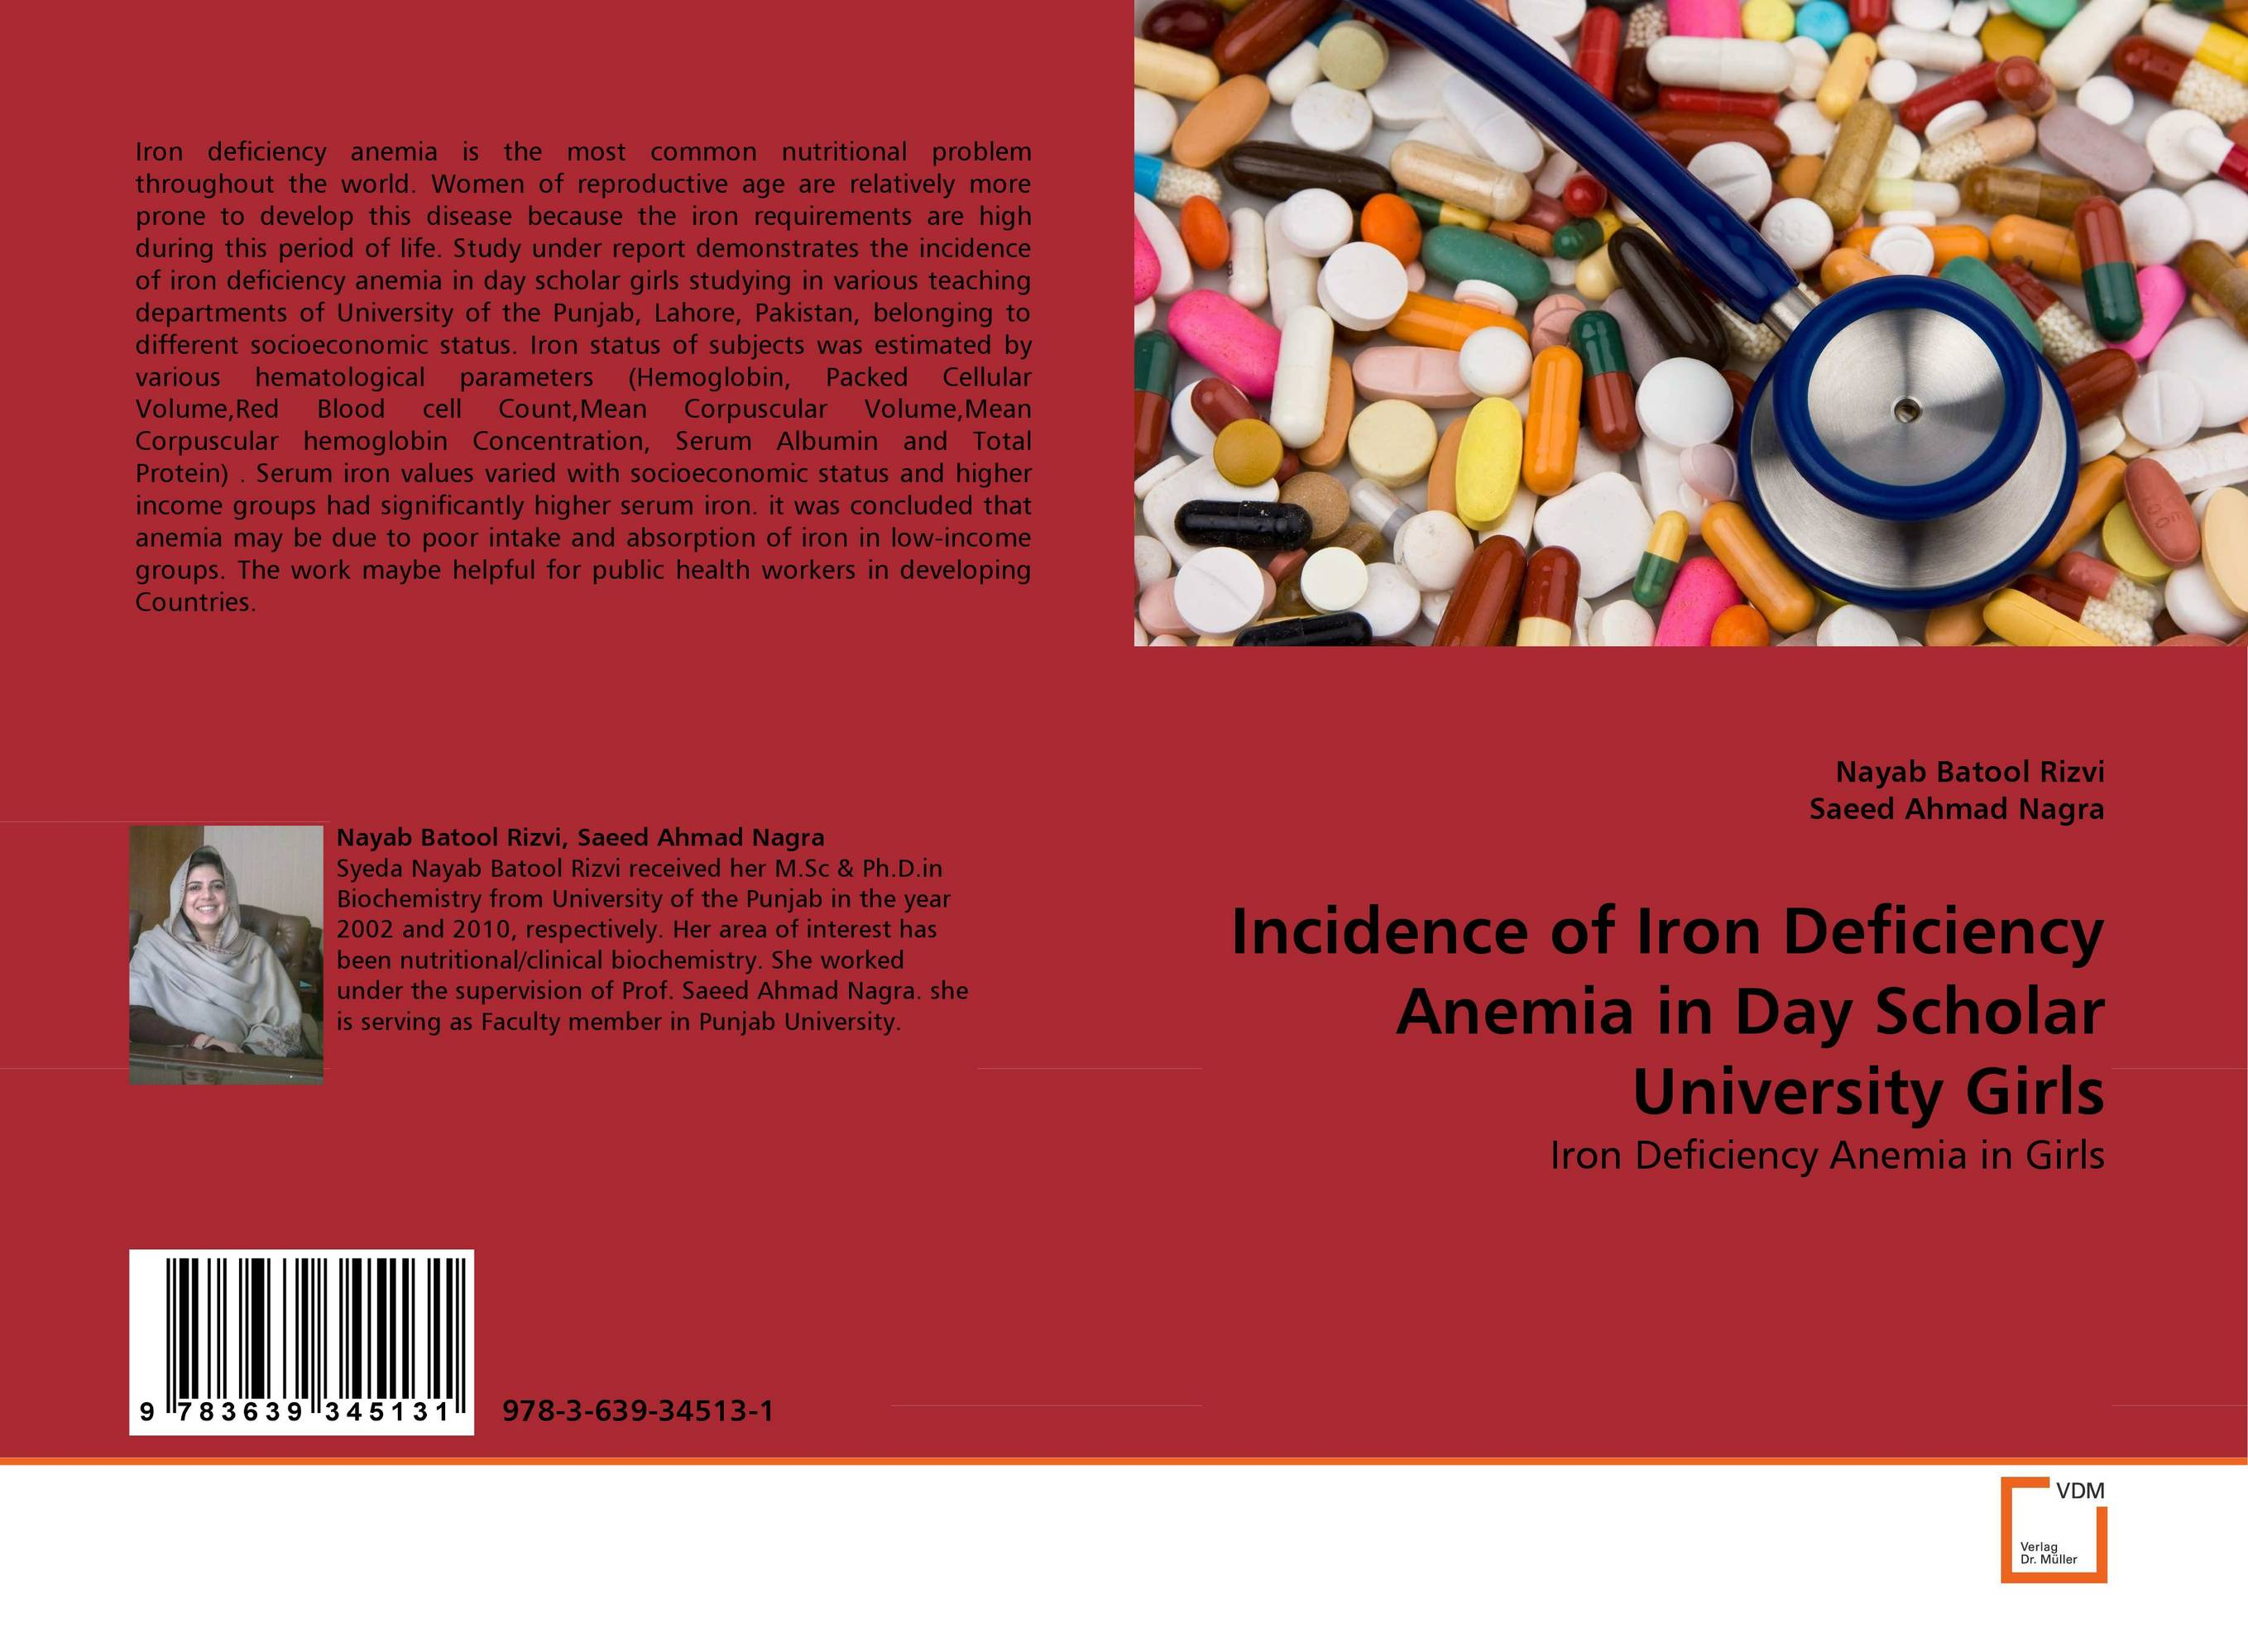 Incidence of Iron Deficiency Anemia in Day Scholar University Girls incidence of iron deficiency anemia in day scholar university girls